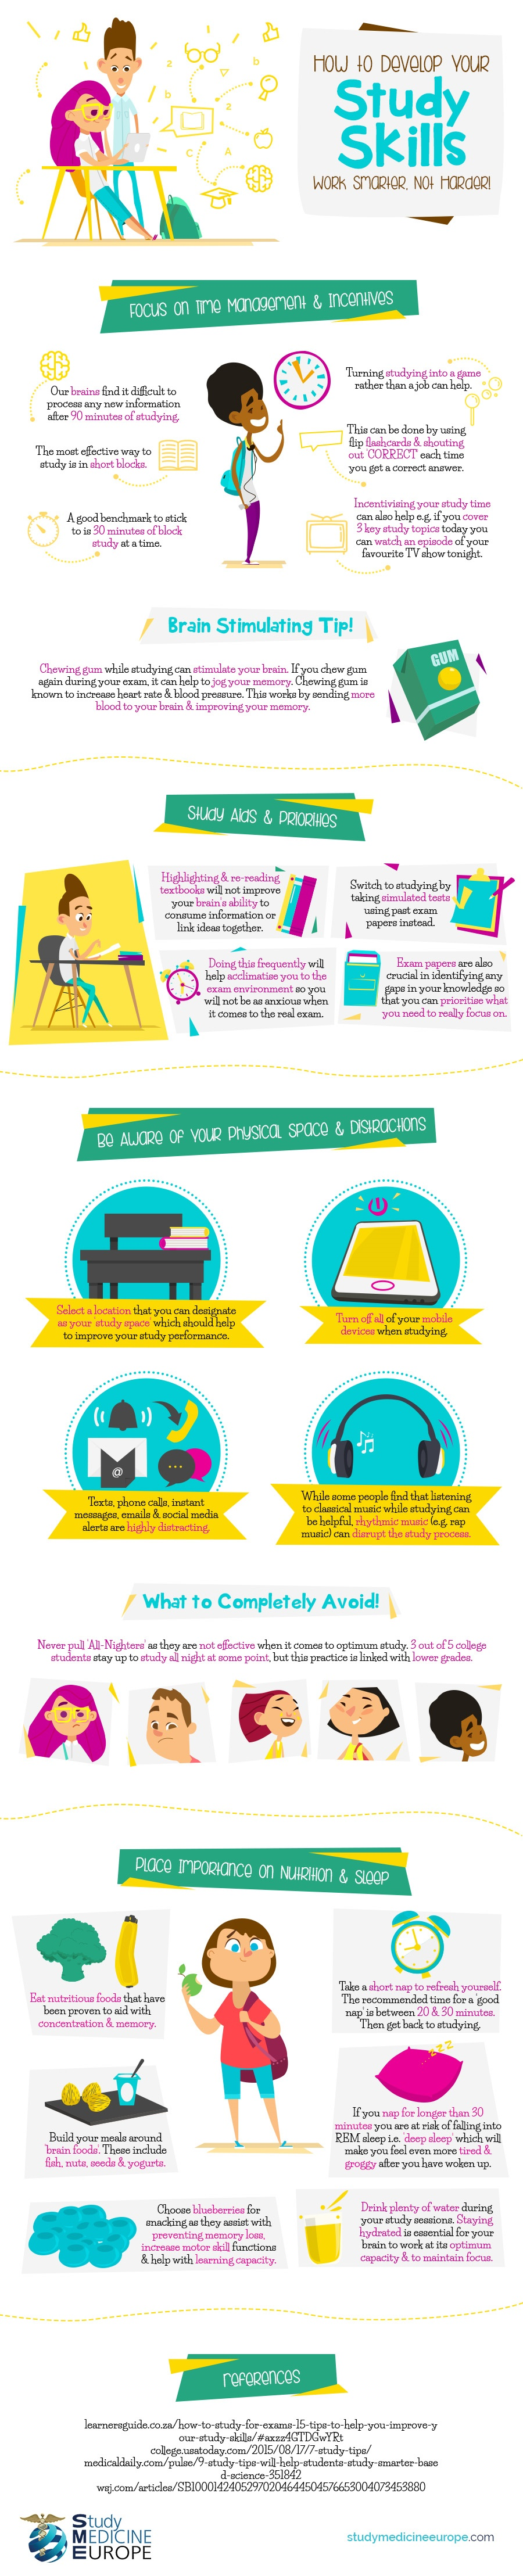 how-to-develop-your-study-skills--work-smarter-not-harder-infographic-plaza